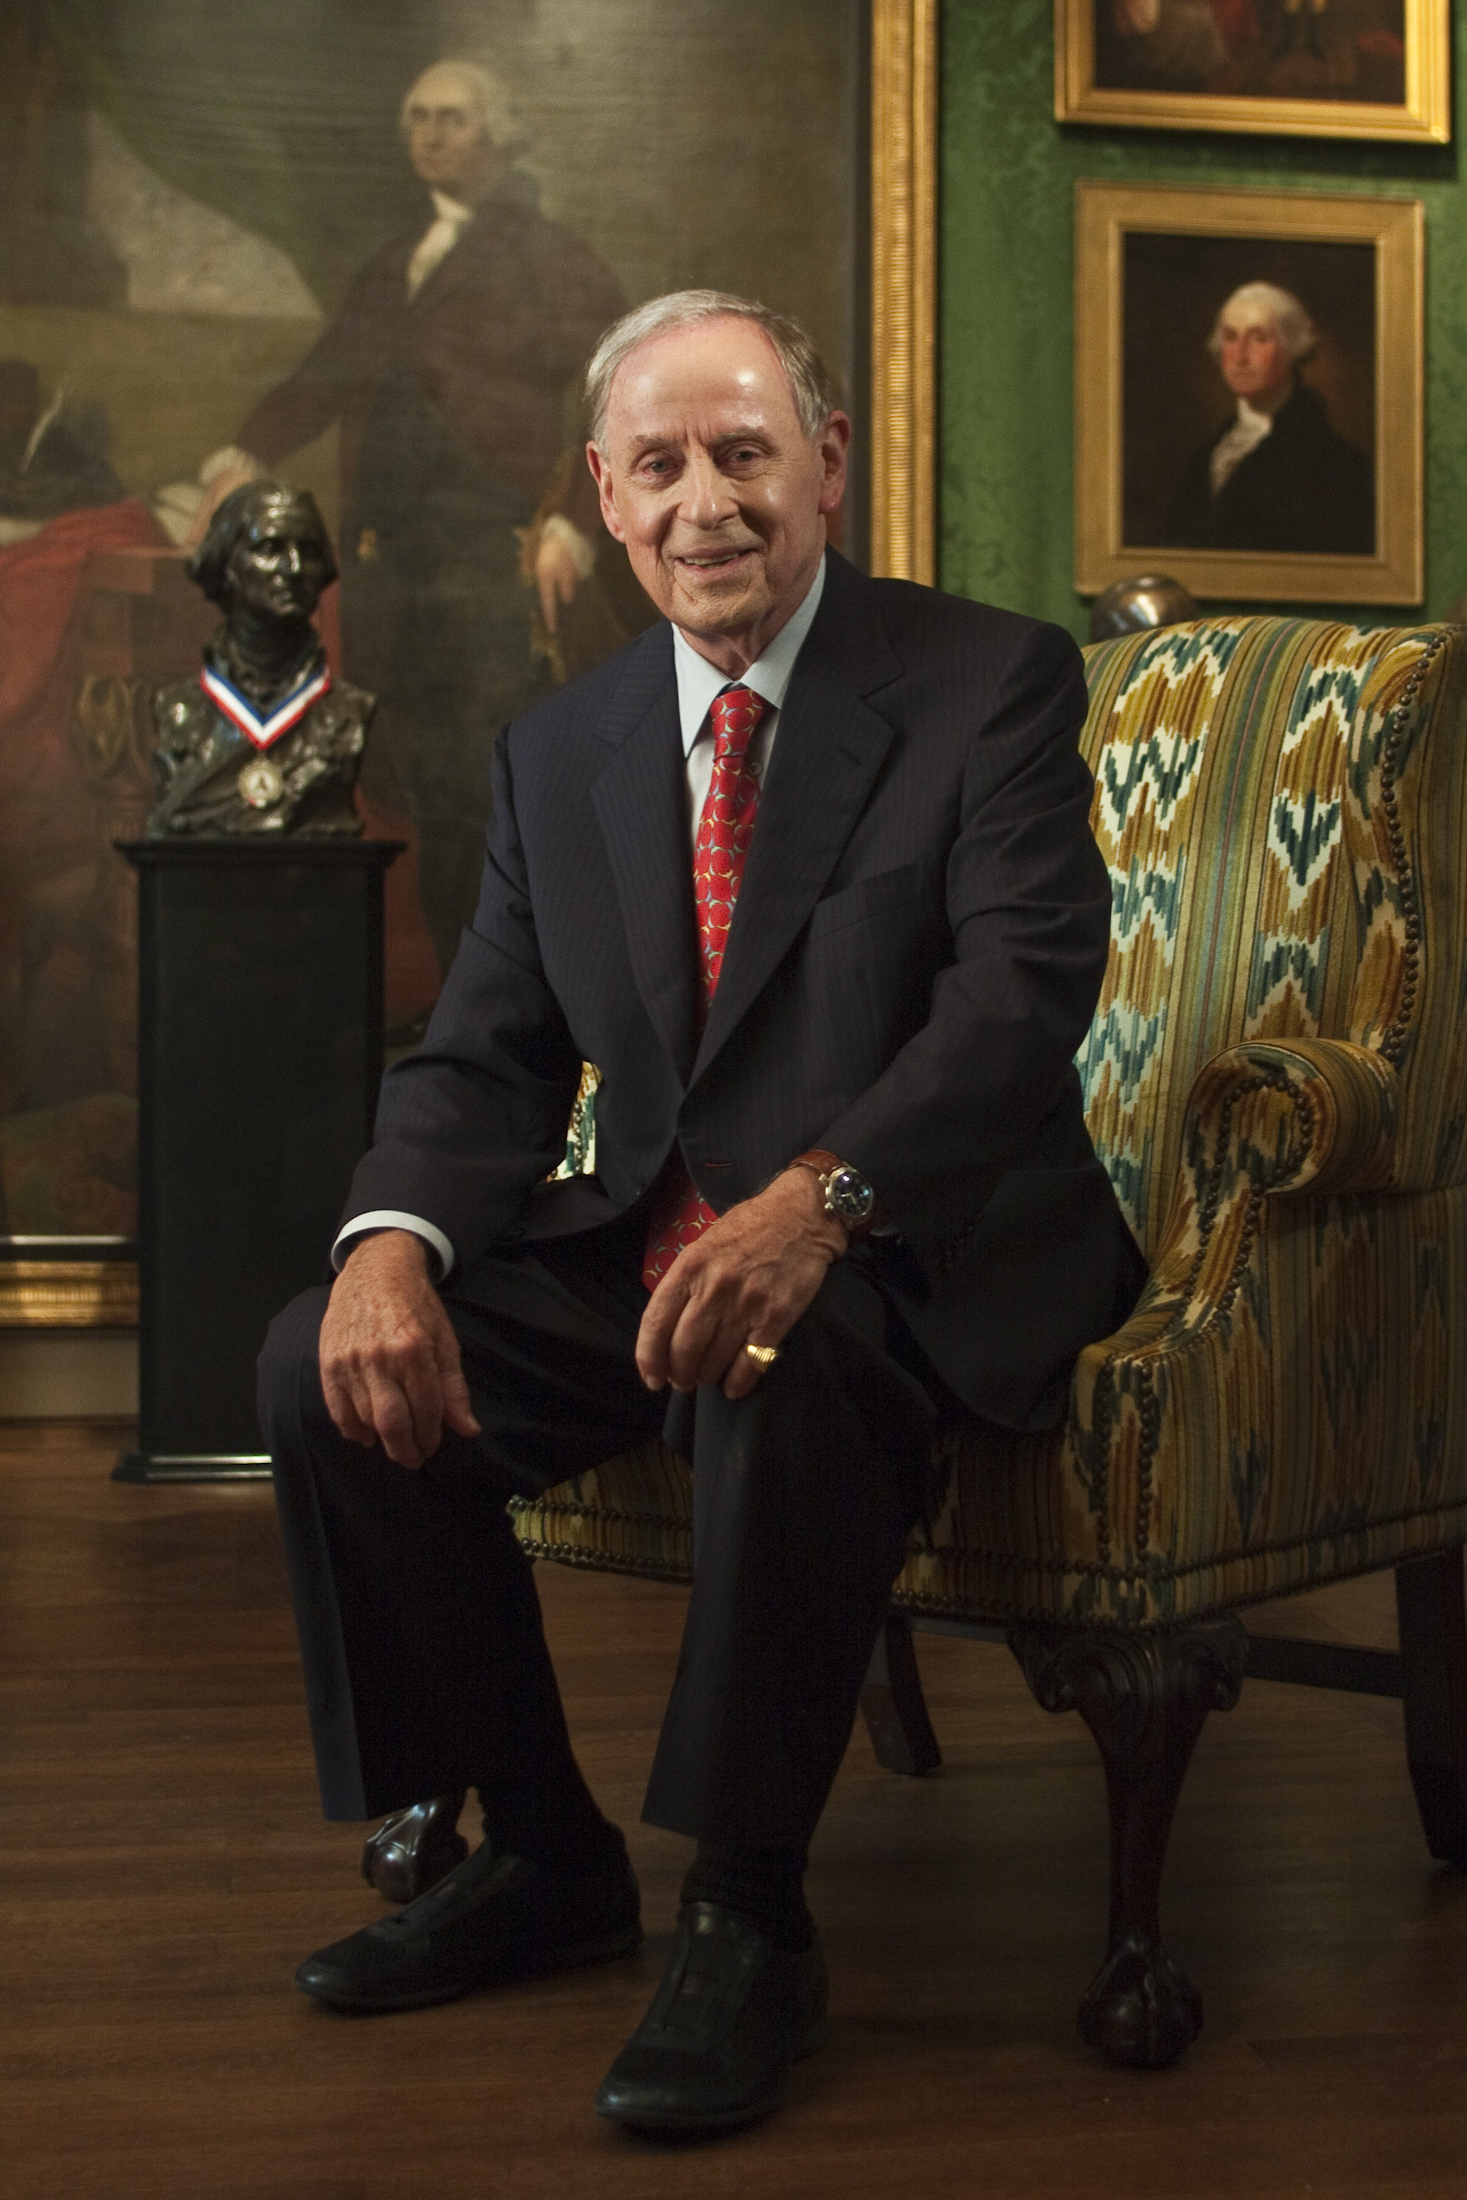 Cary Maguire, Sr., community leader